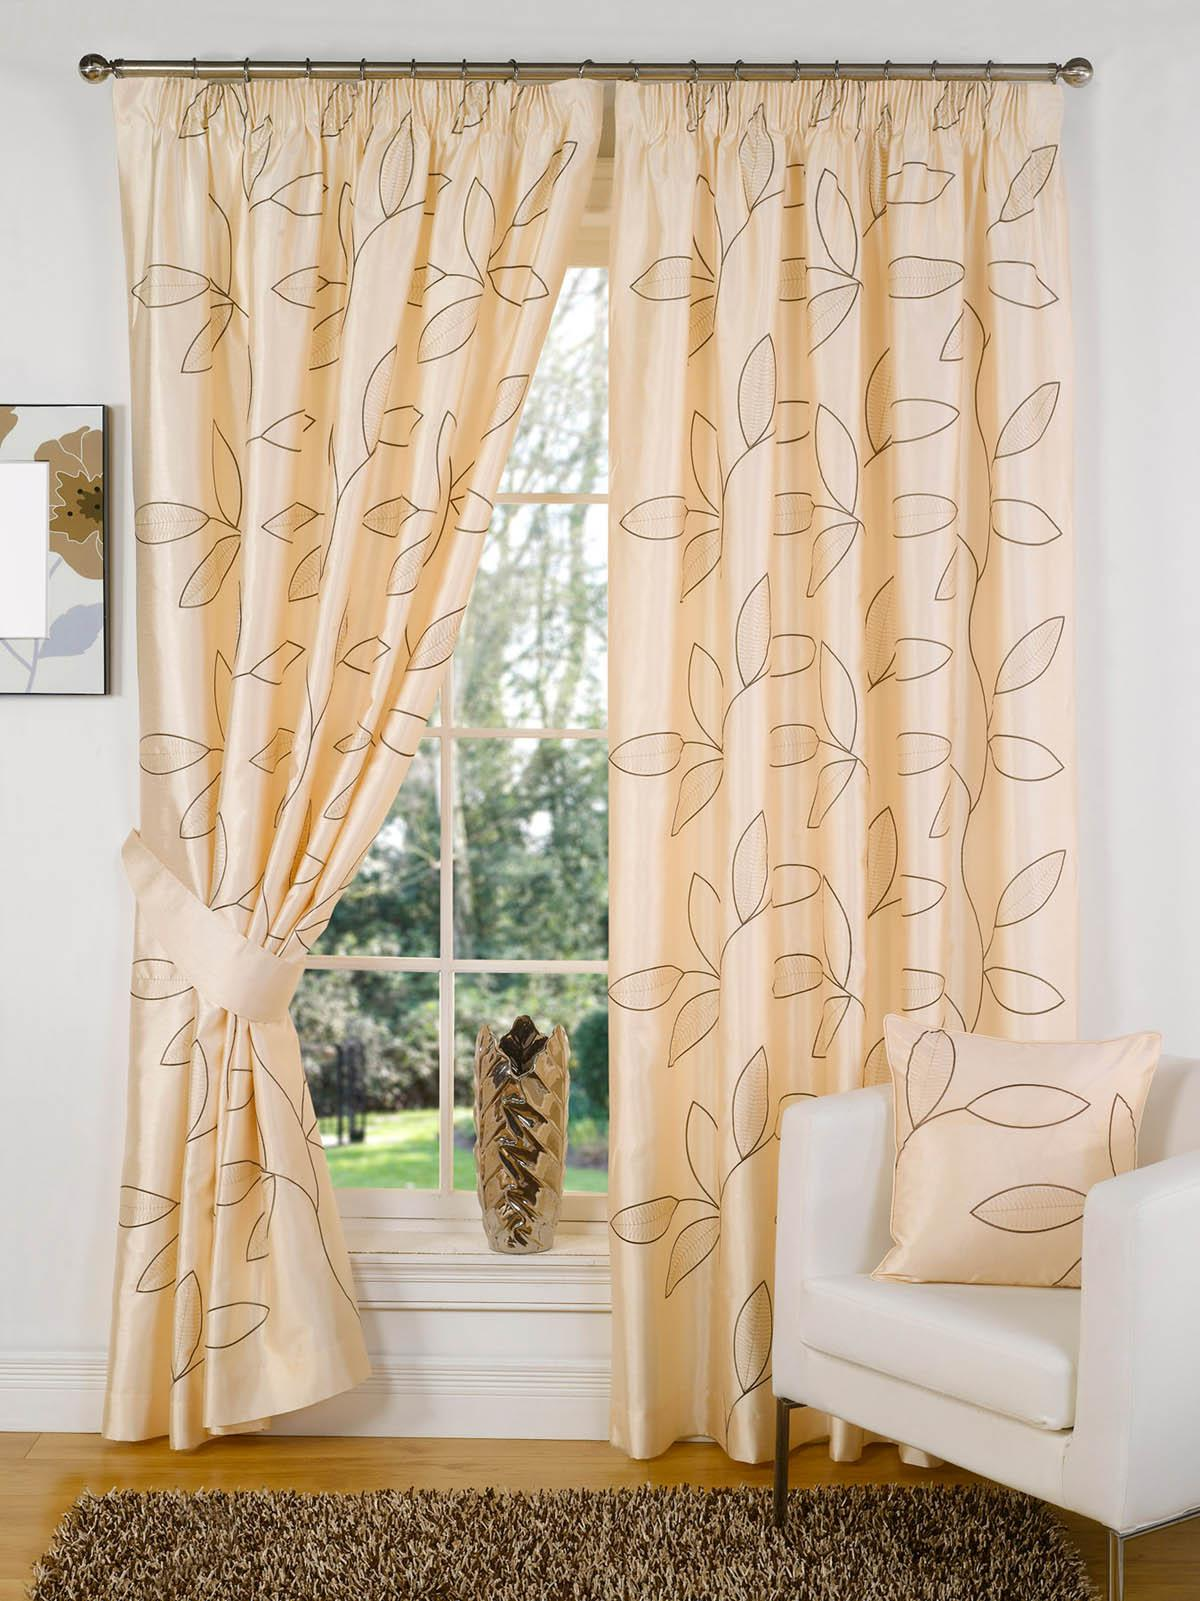 Lilac Velvet Curtains | Embroidered Linen Curtains | Embroidered Curtains